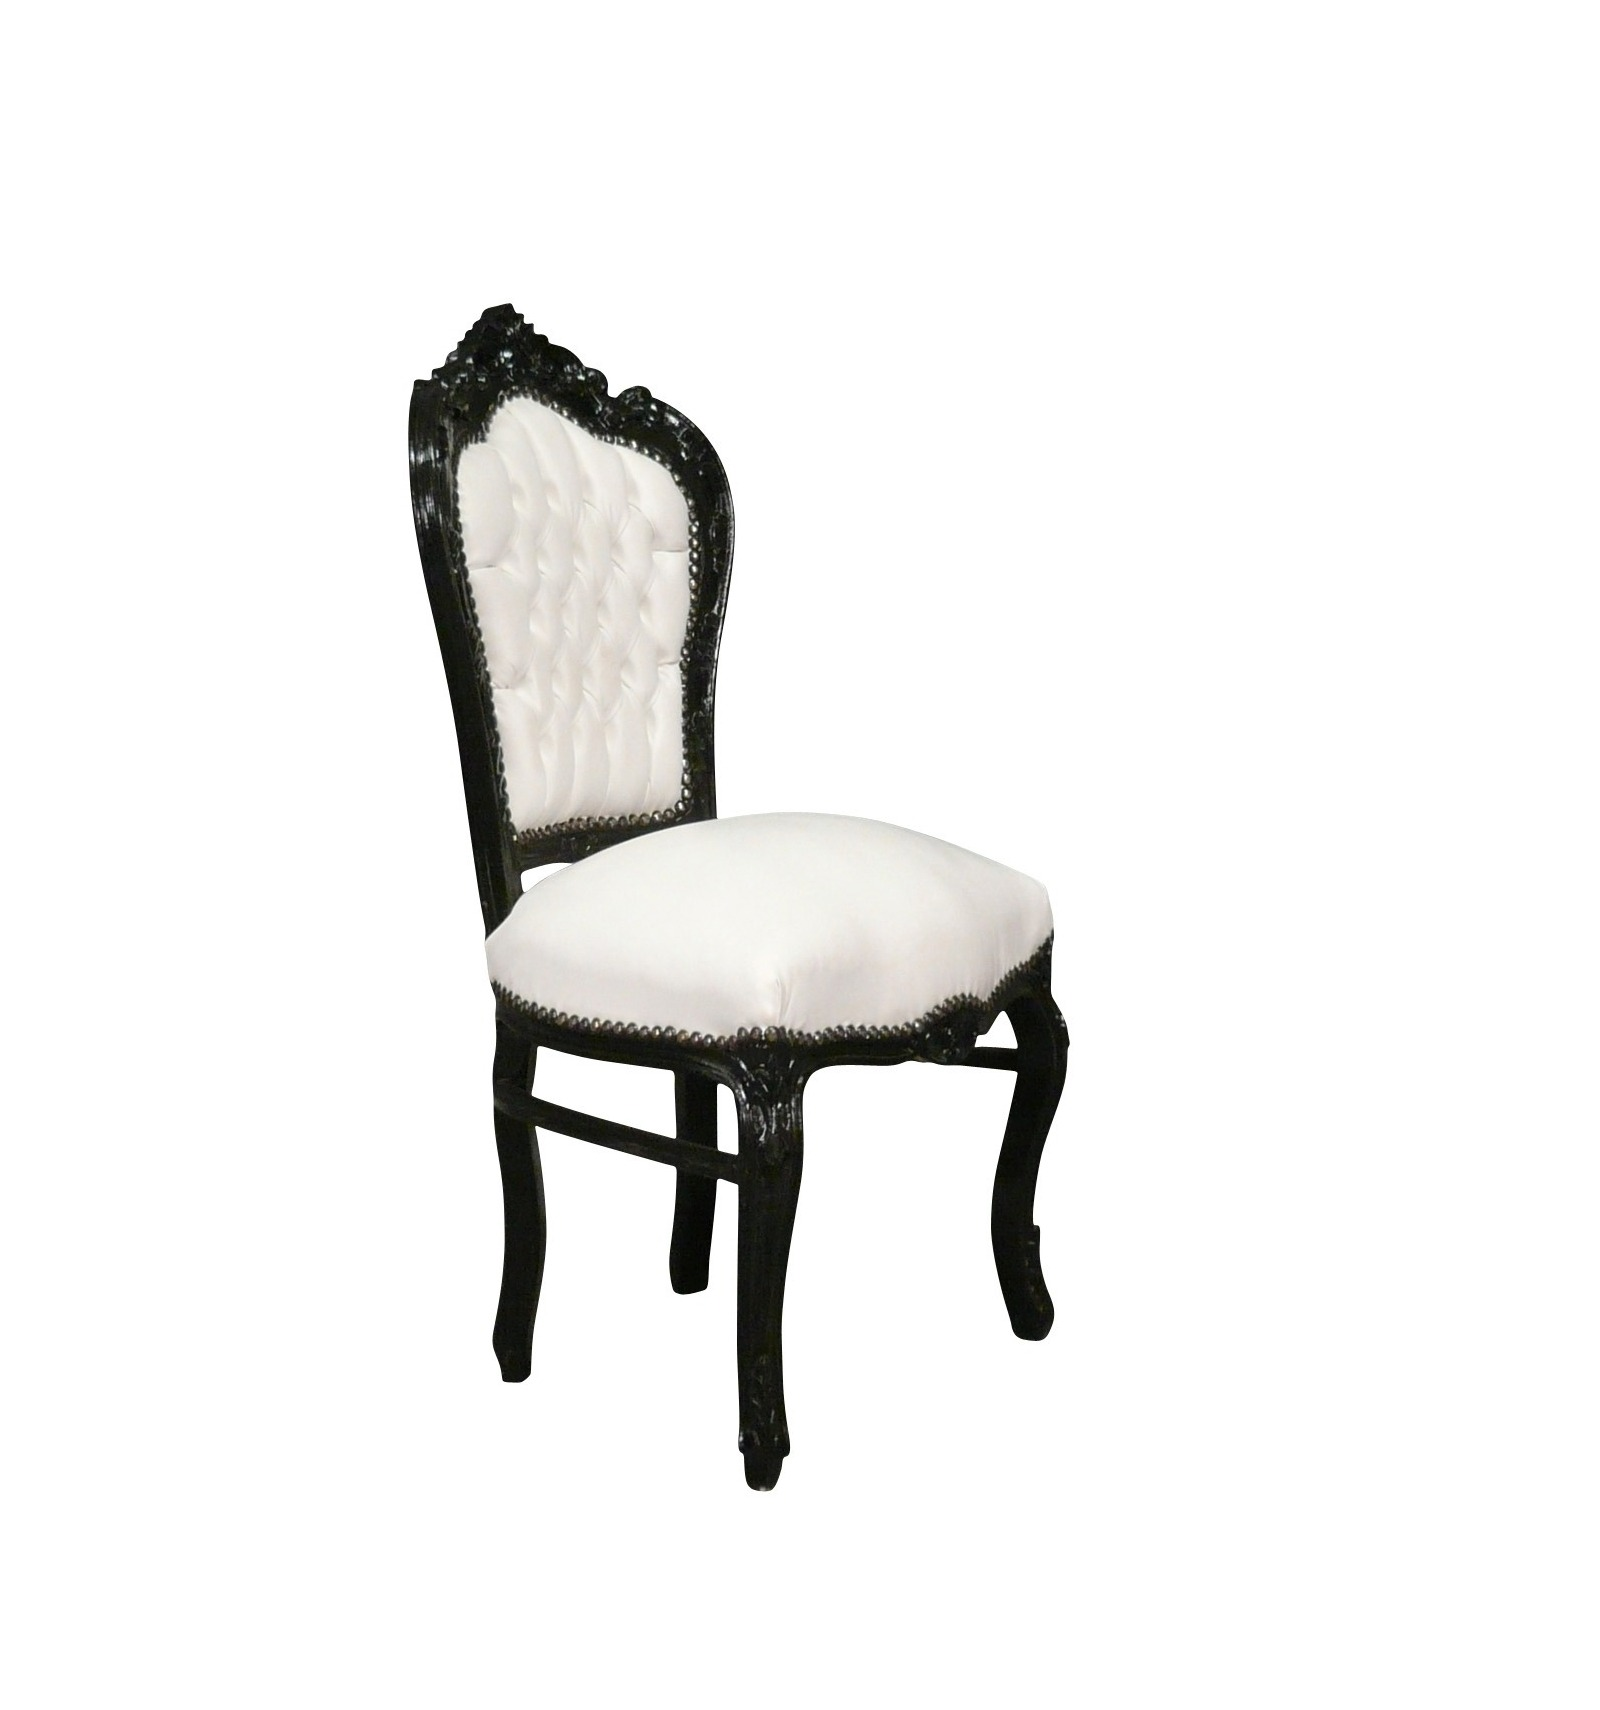 Baroque Chair Black And White   Baroque Chairs